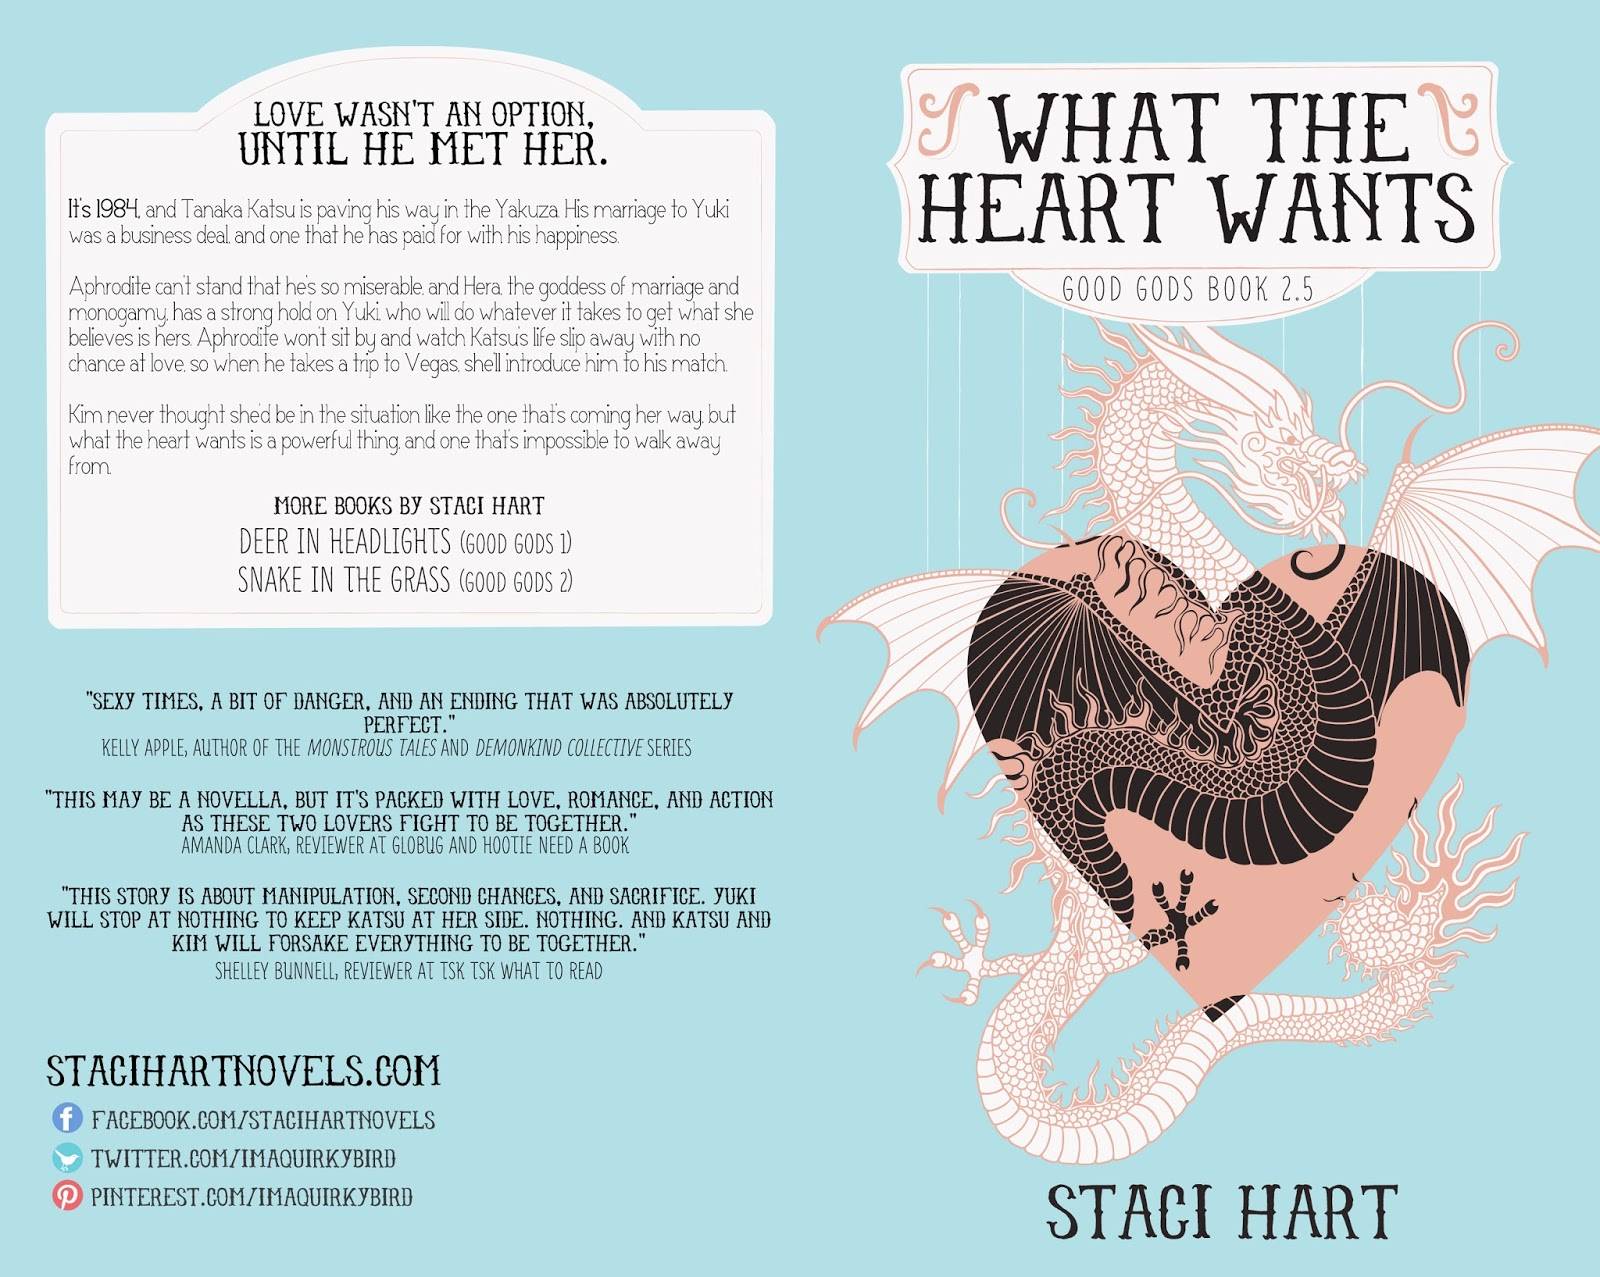 What the Heart Wants by Staci Hart